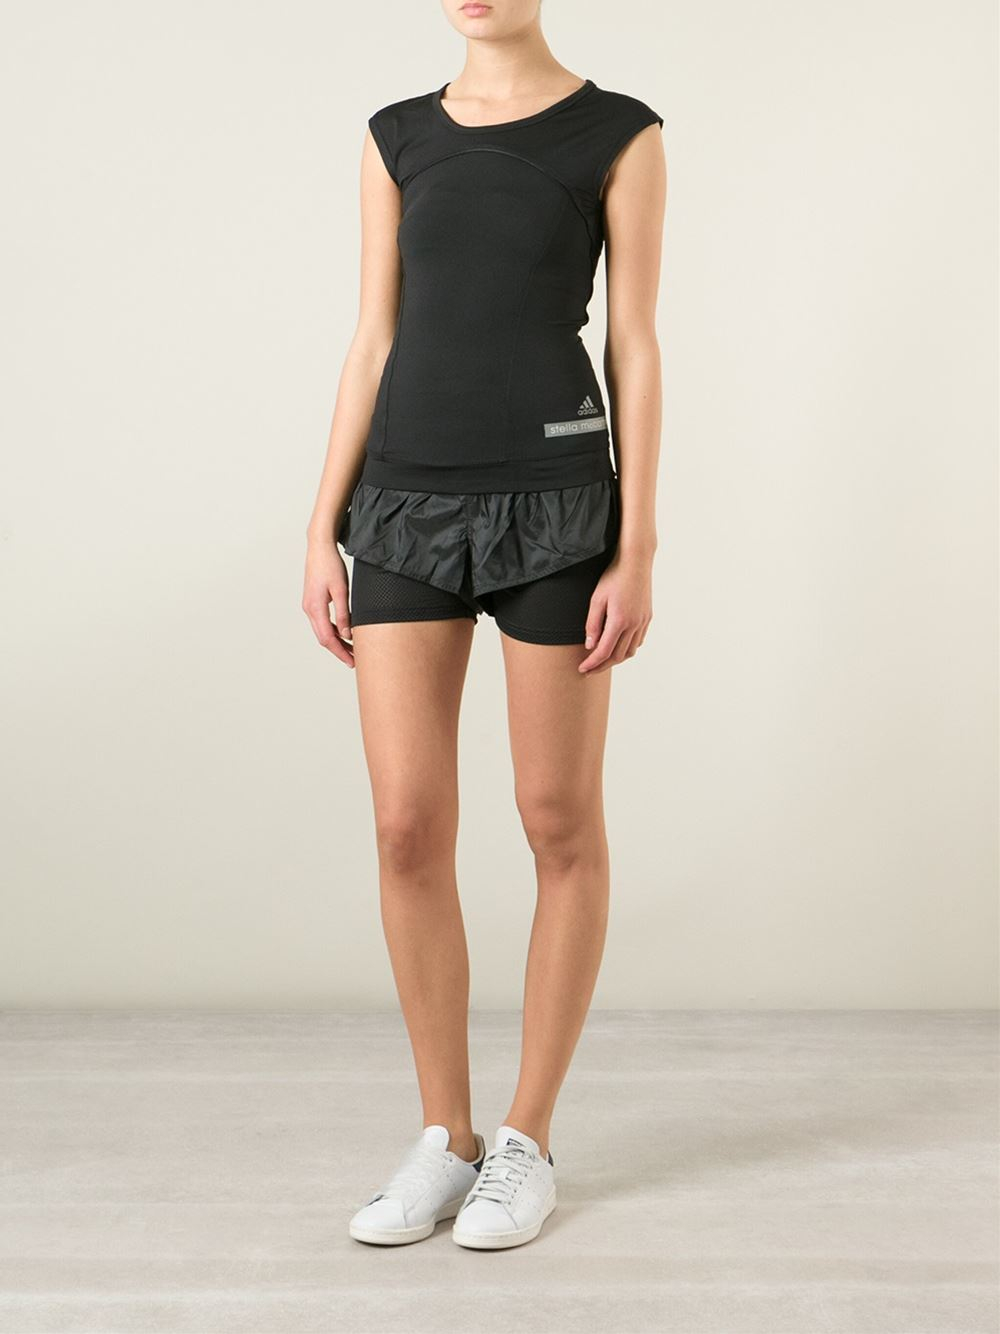 adidas by stella mccartney running tank top in black lyst. Black Bedroom Furniture Sets. Home Design Ideas